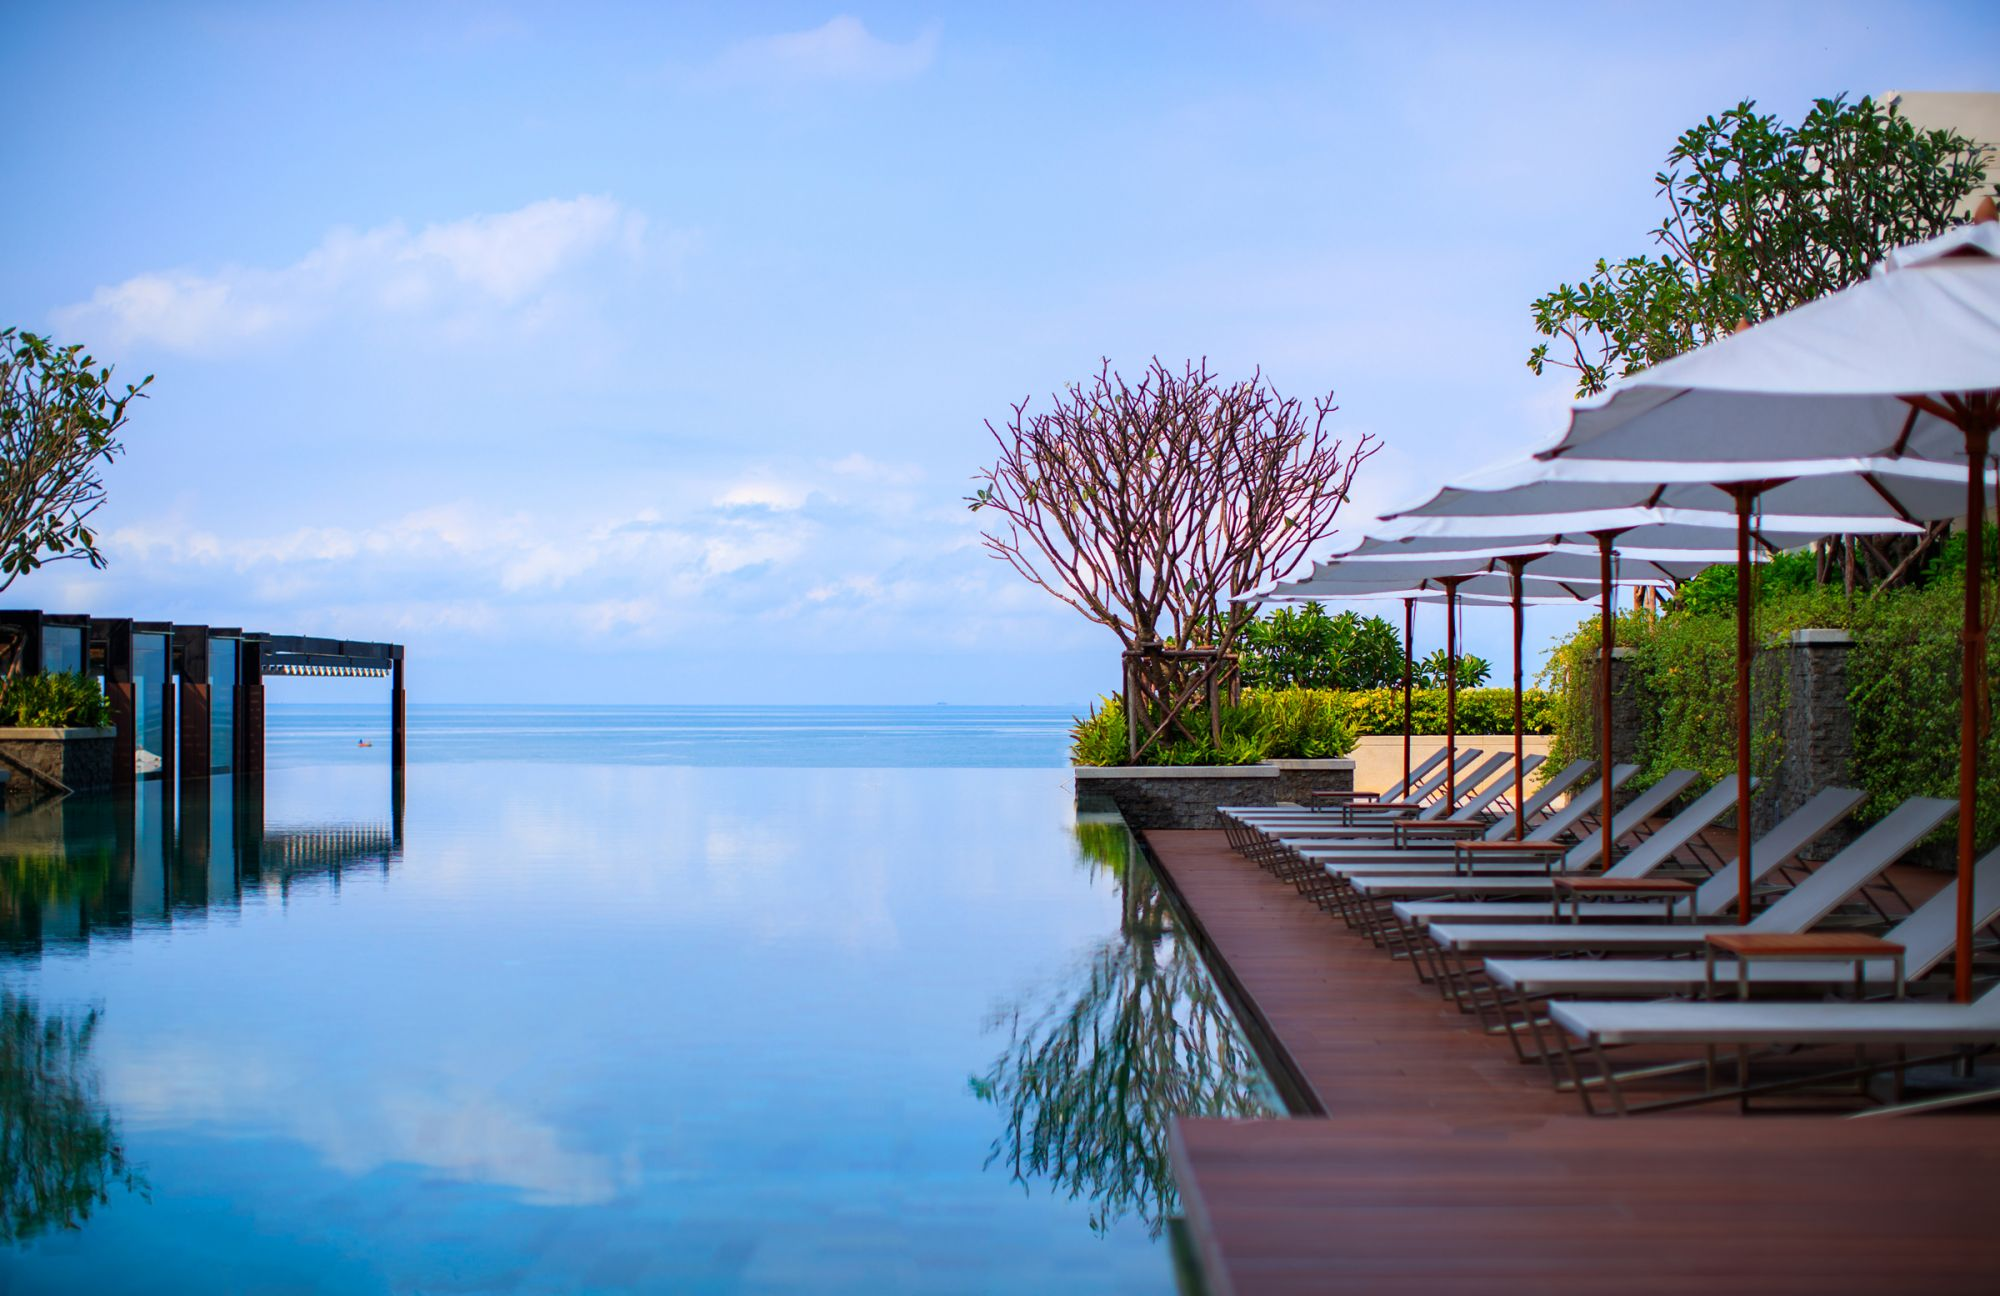 Thailand Tatler's CNY 2020 Giveaway: Win A Stay At Renaissance Pattaya Resort & Spa, Spa Treatments and Sunday Brunch